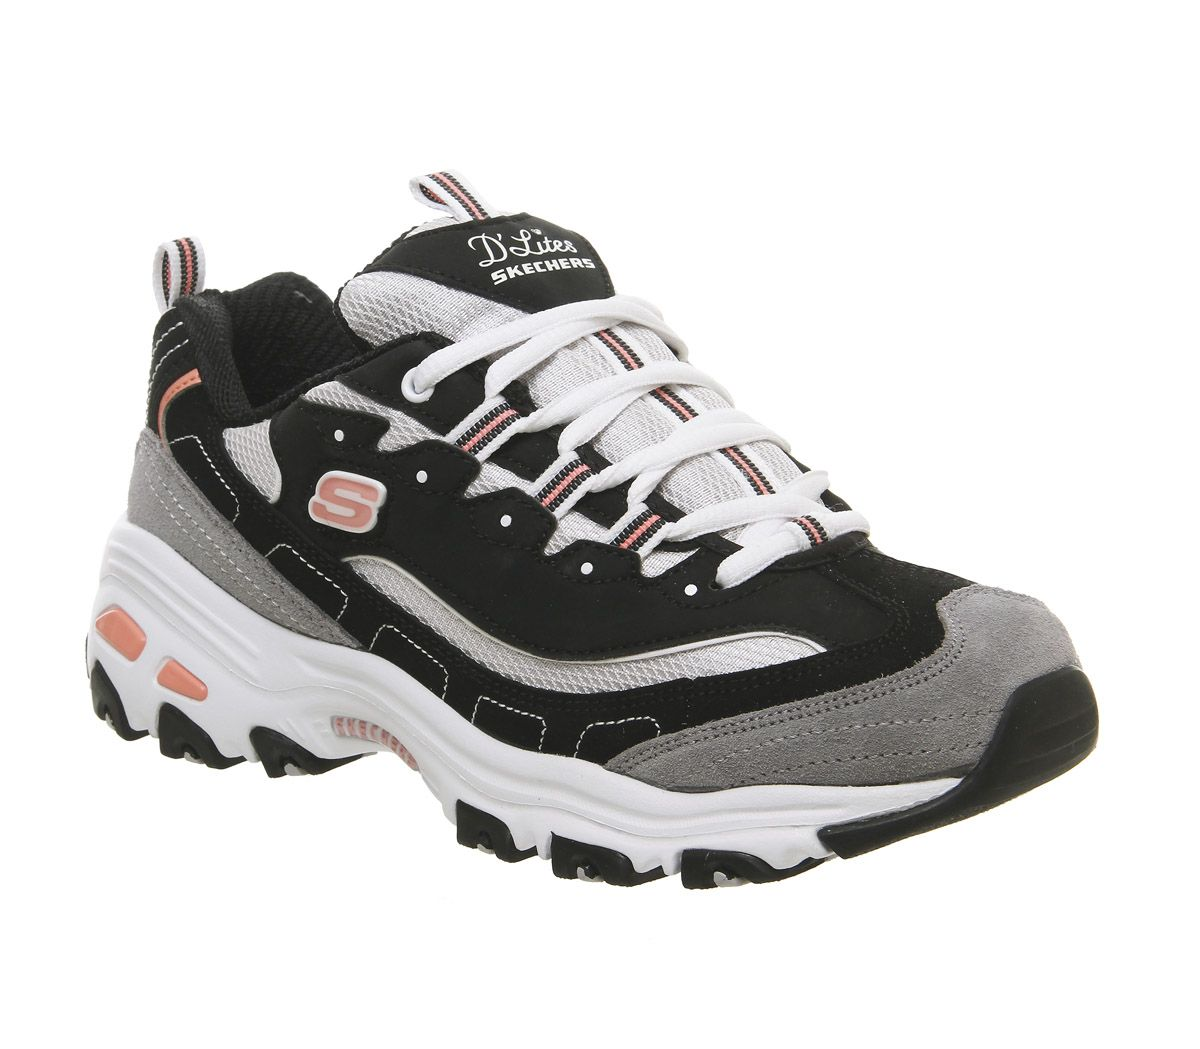 b7f1cb87d8 Skechers D'lites Trainers Black White Pink Grey - Hers trainers